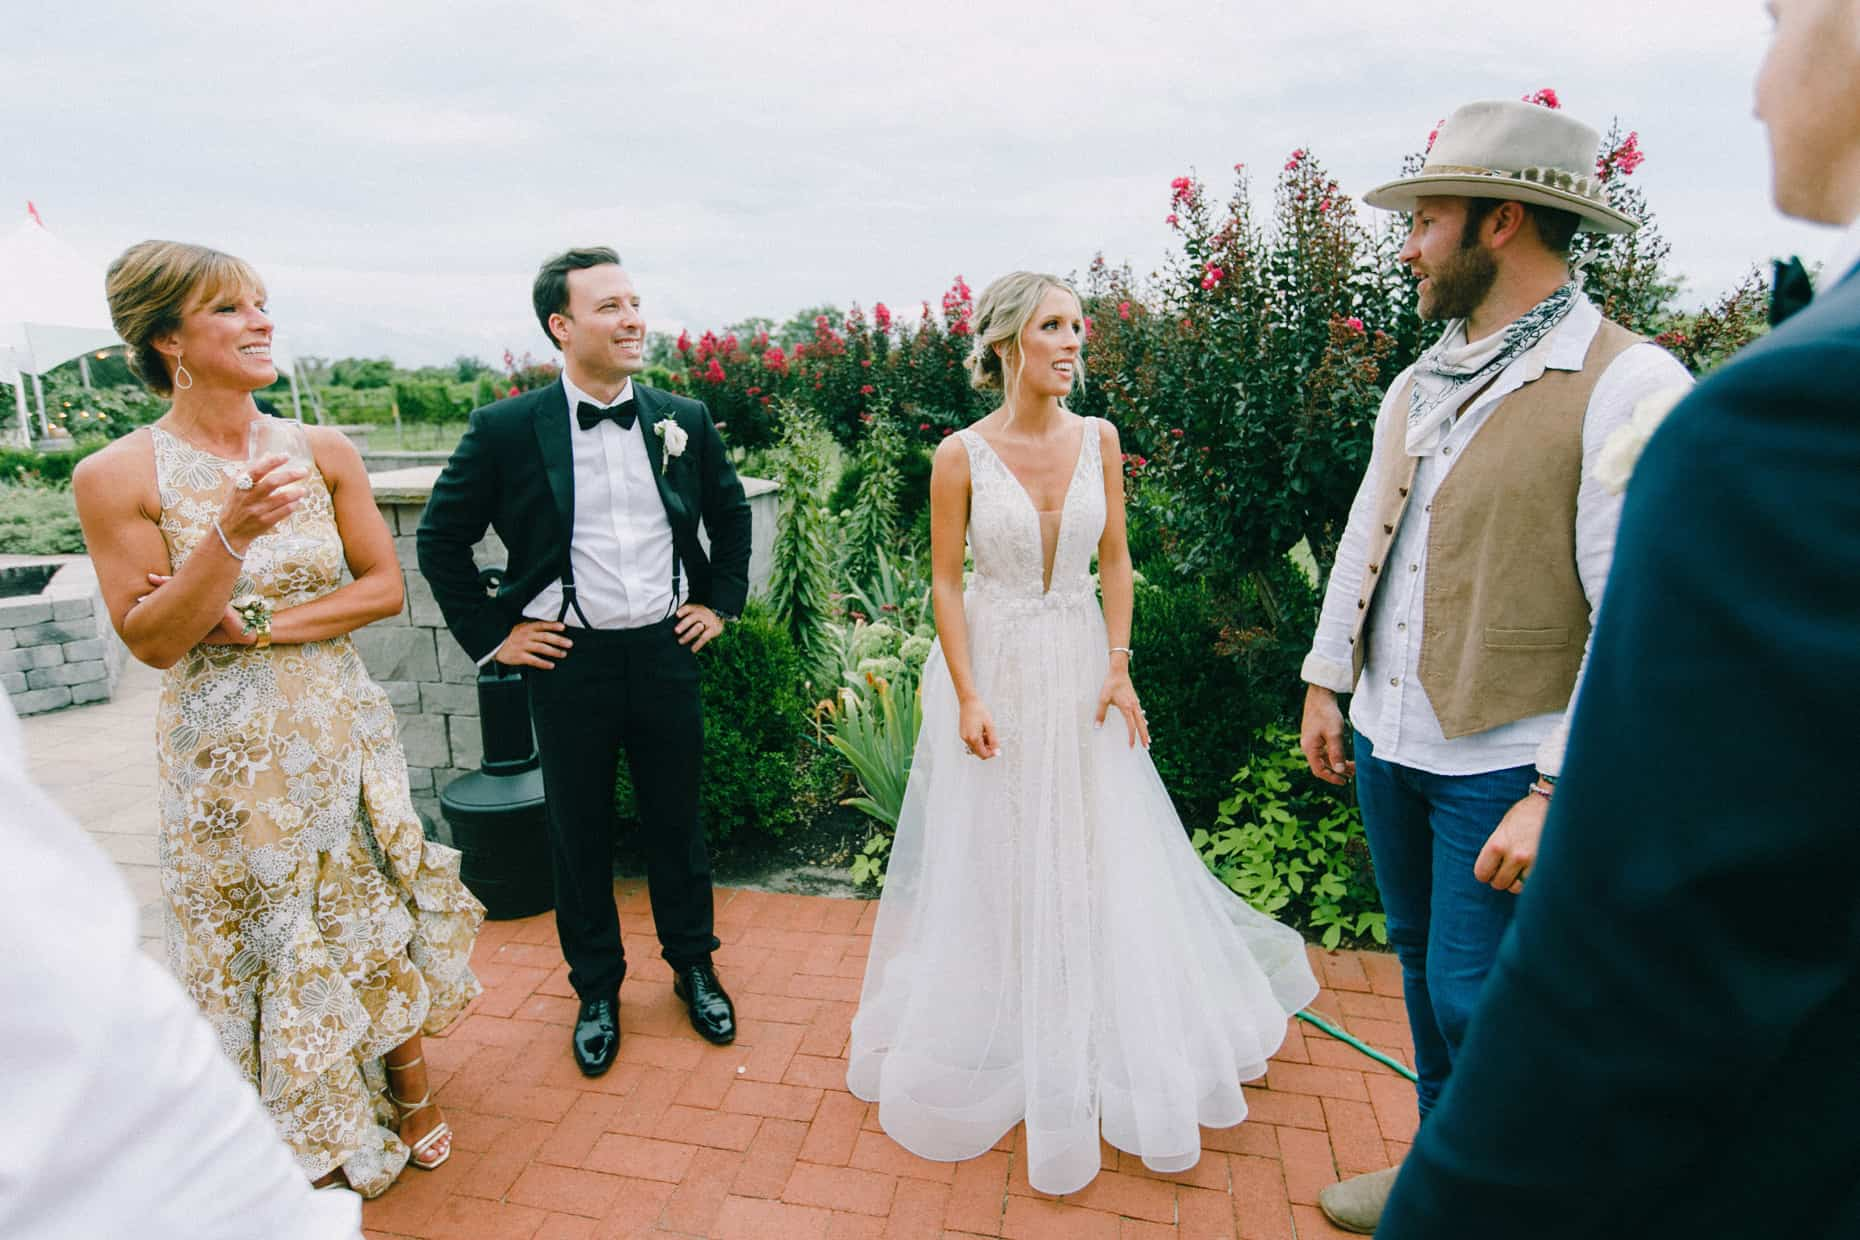 Drake White performs at a wedding in Cape May